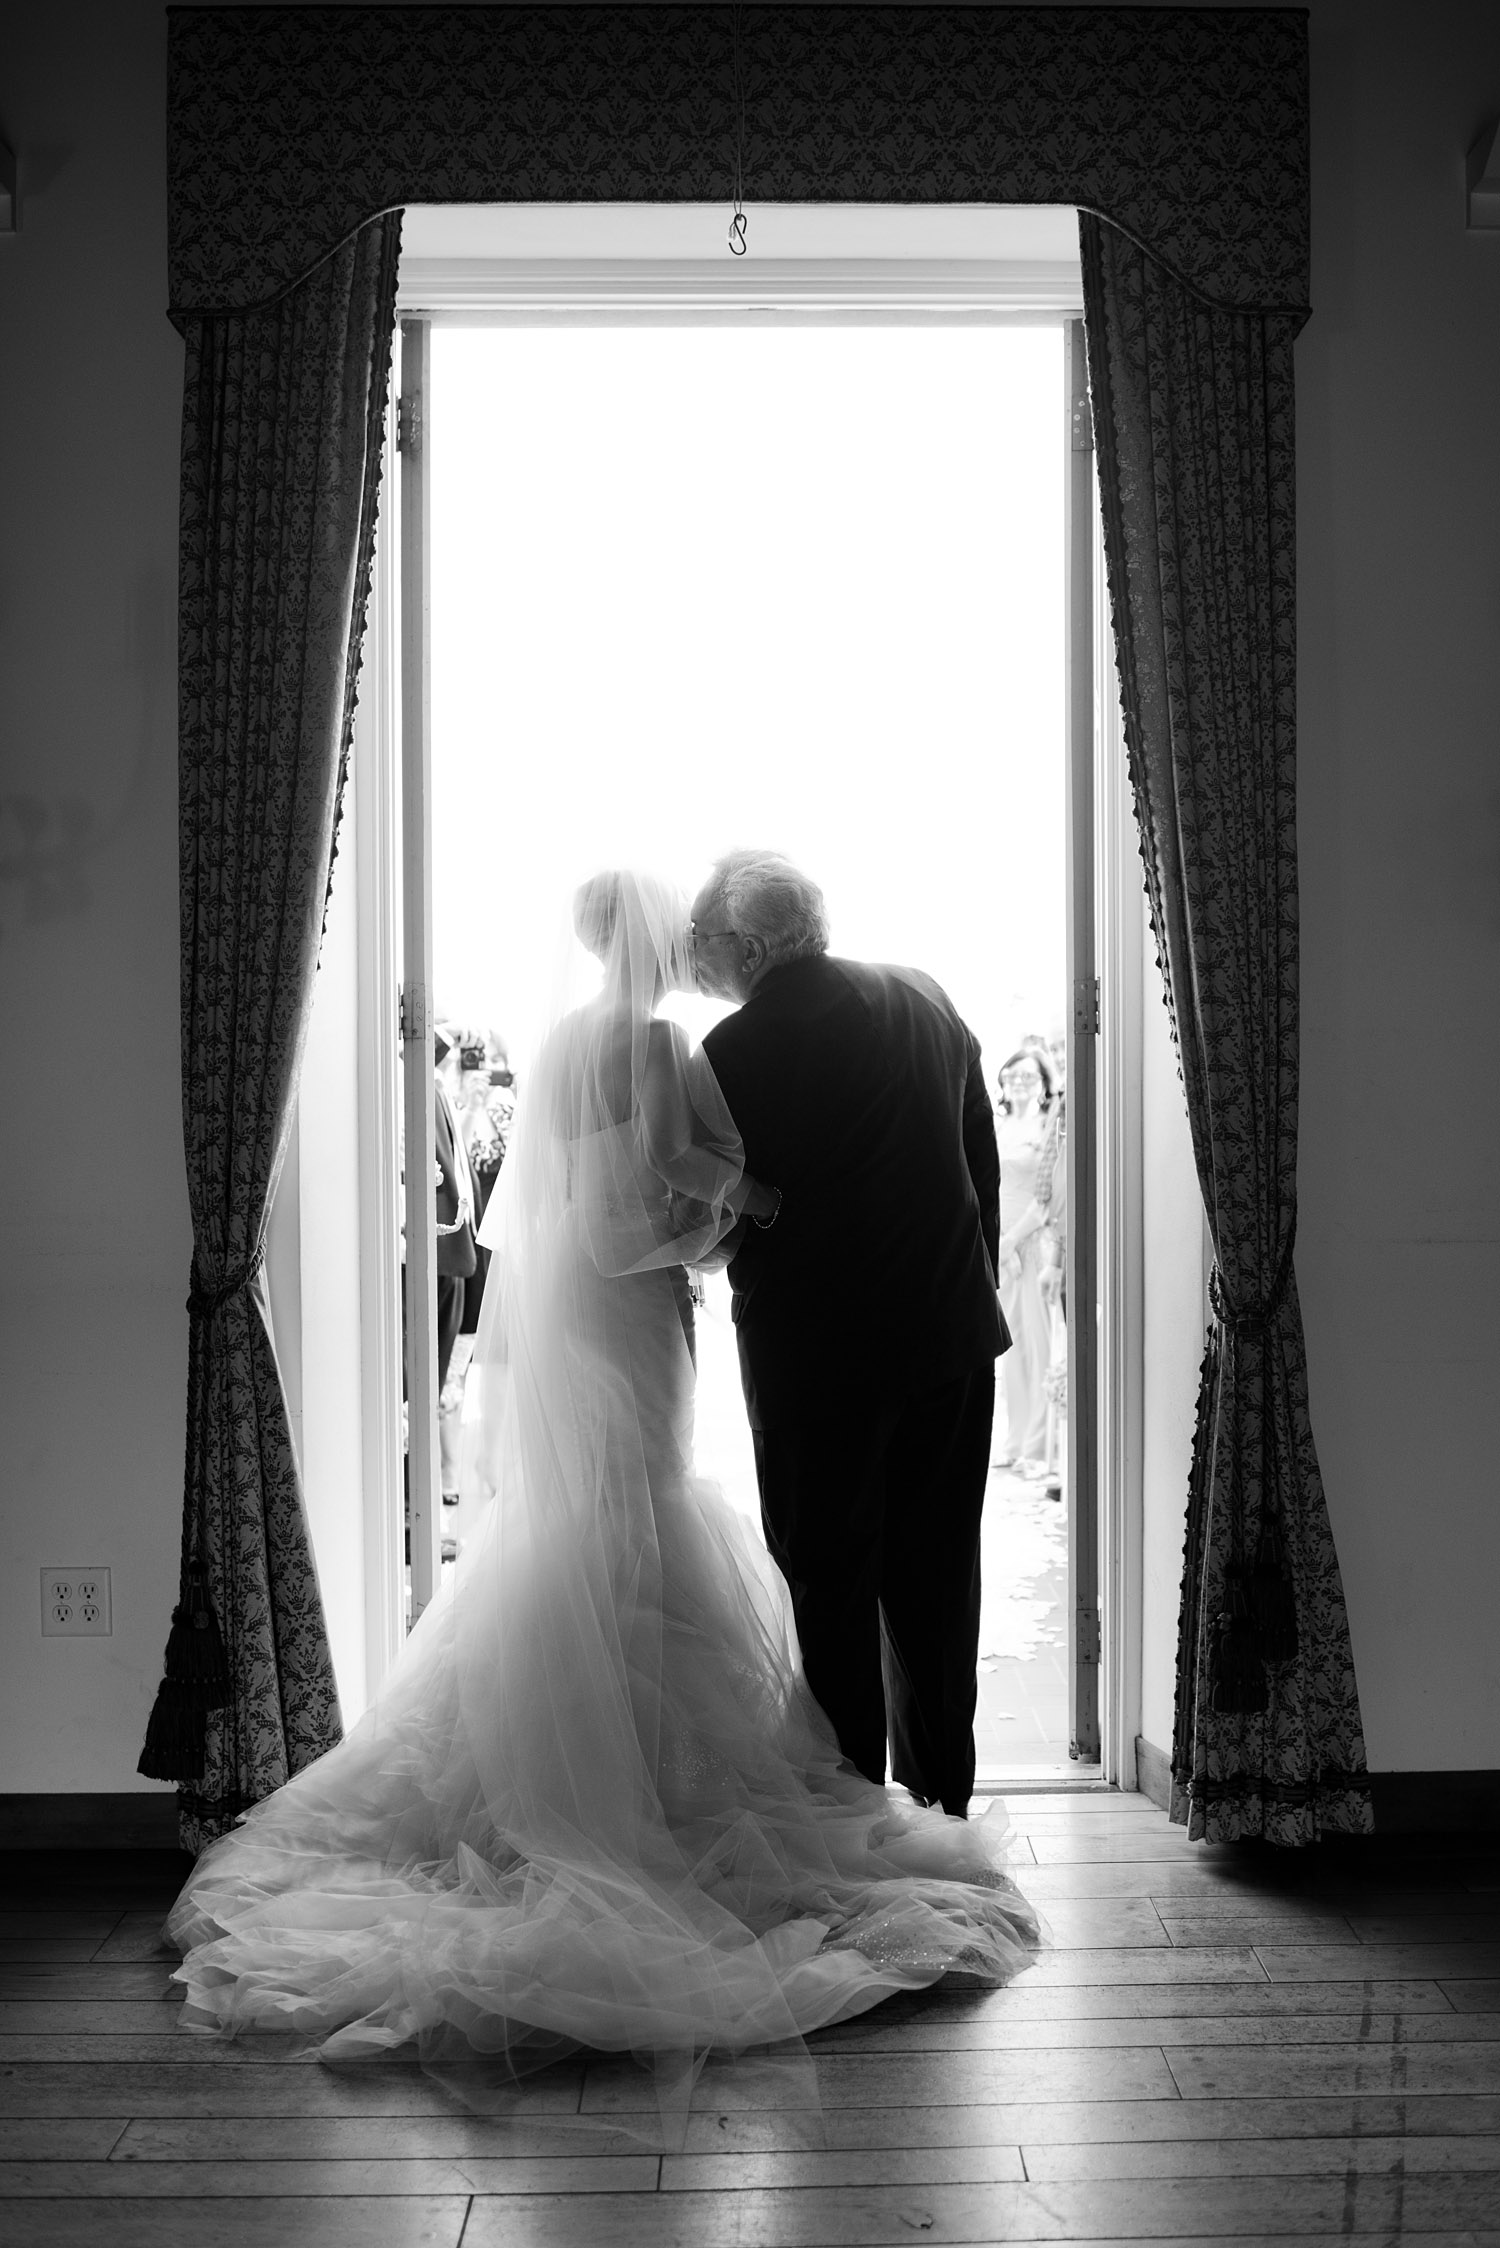 father of the bride escorts the bride down the aisle at this Destination Italian wedding at the Villa Terrace - a favorite wedding venue of international destination wedding photographer LExia Frank who is a film photographer of luxury weddings